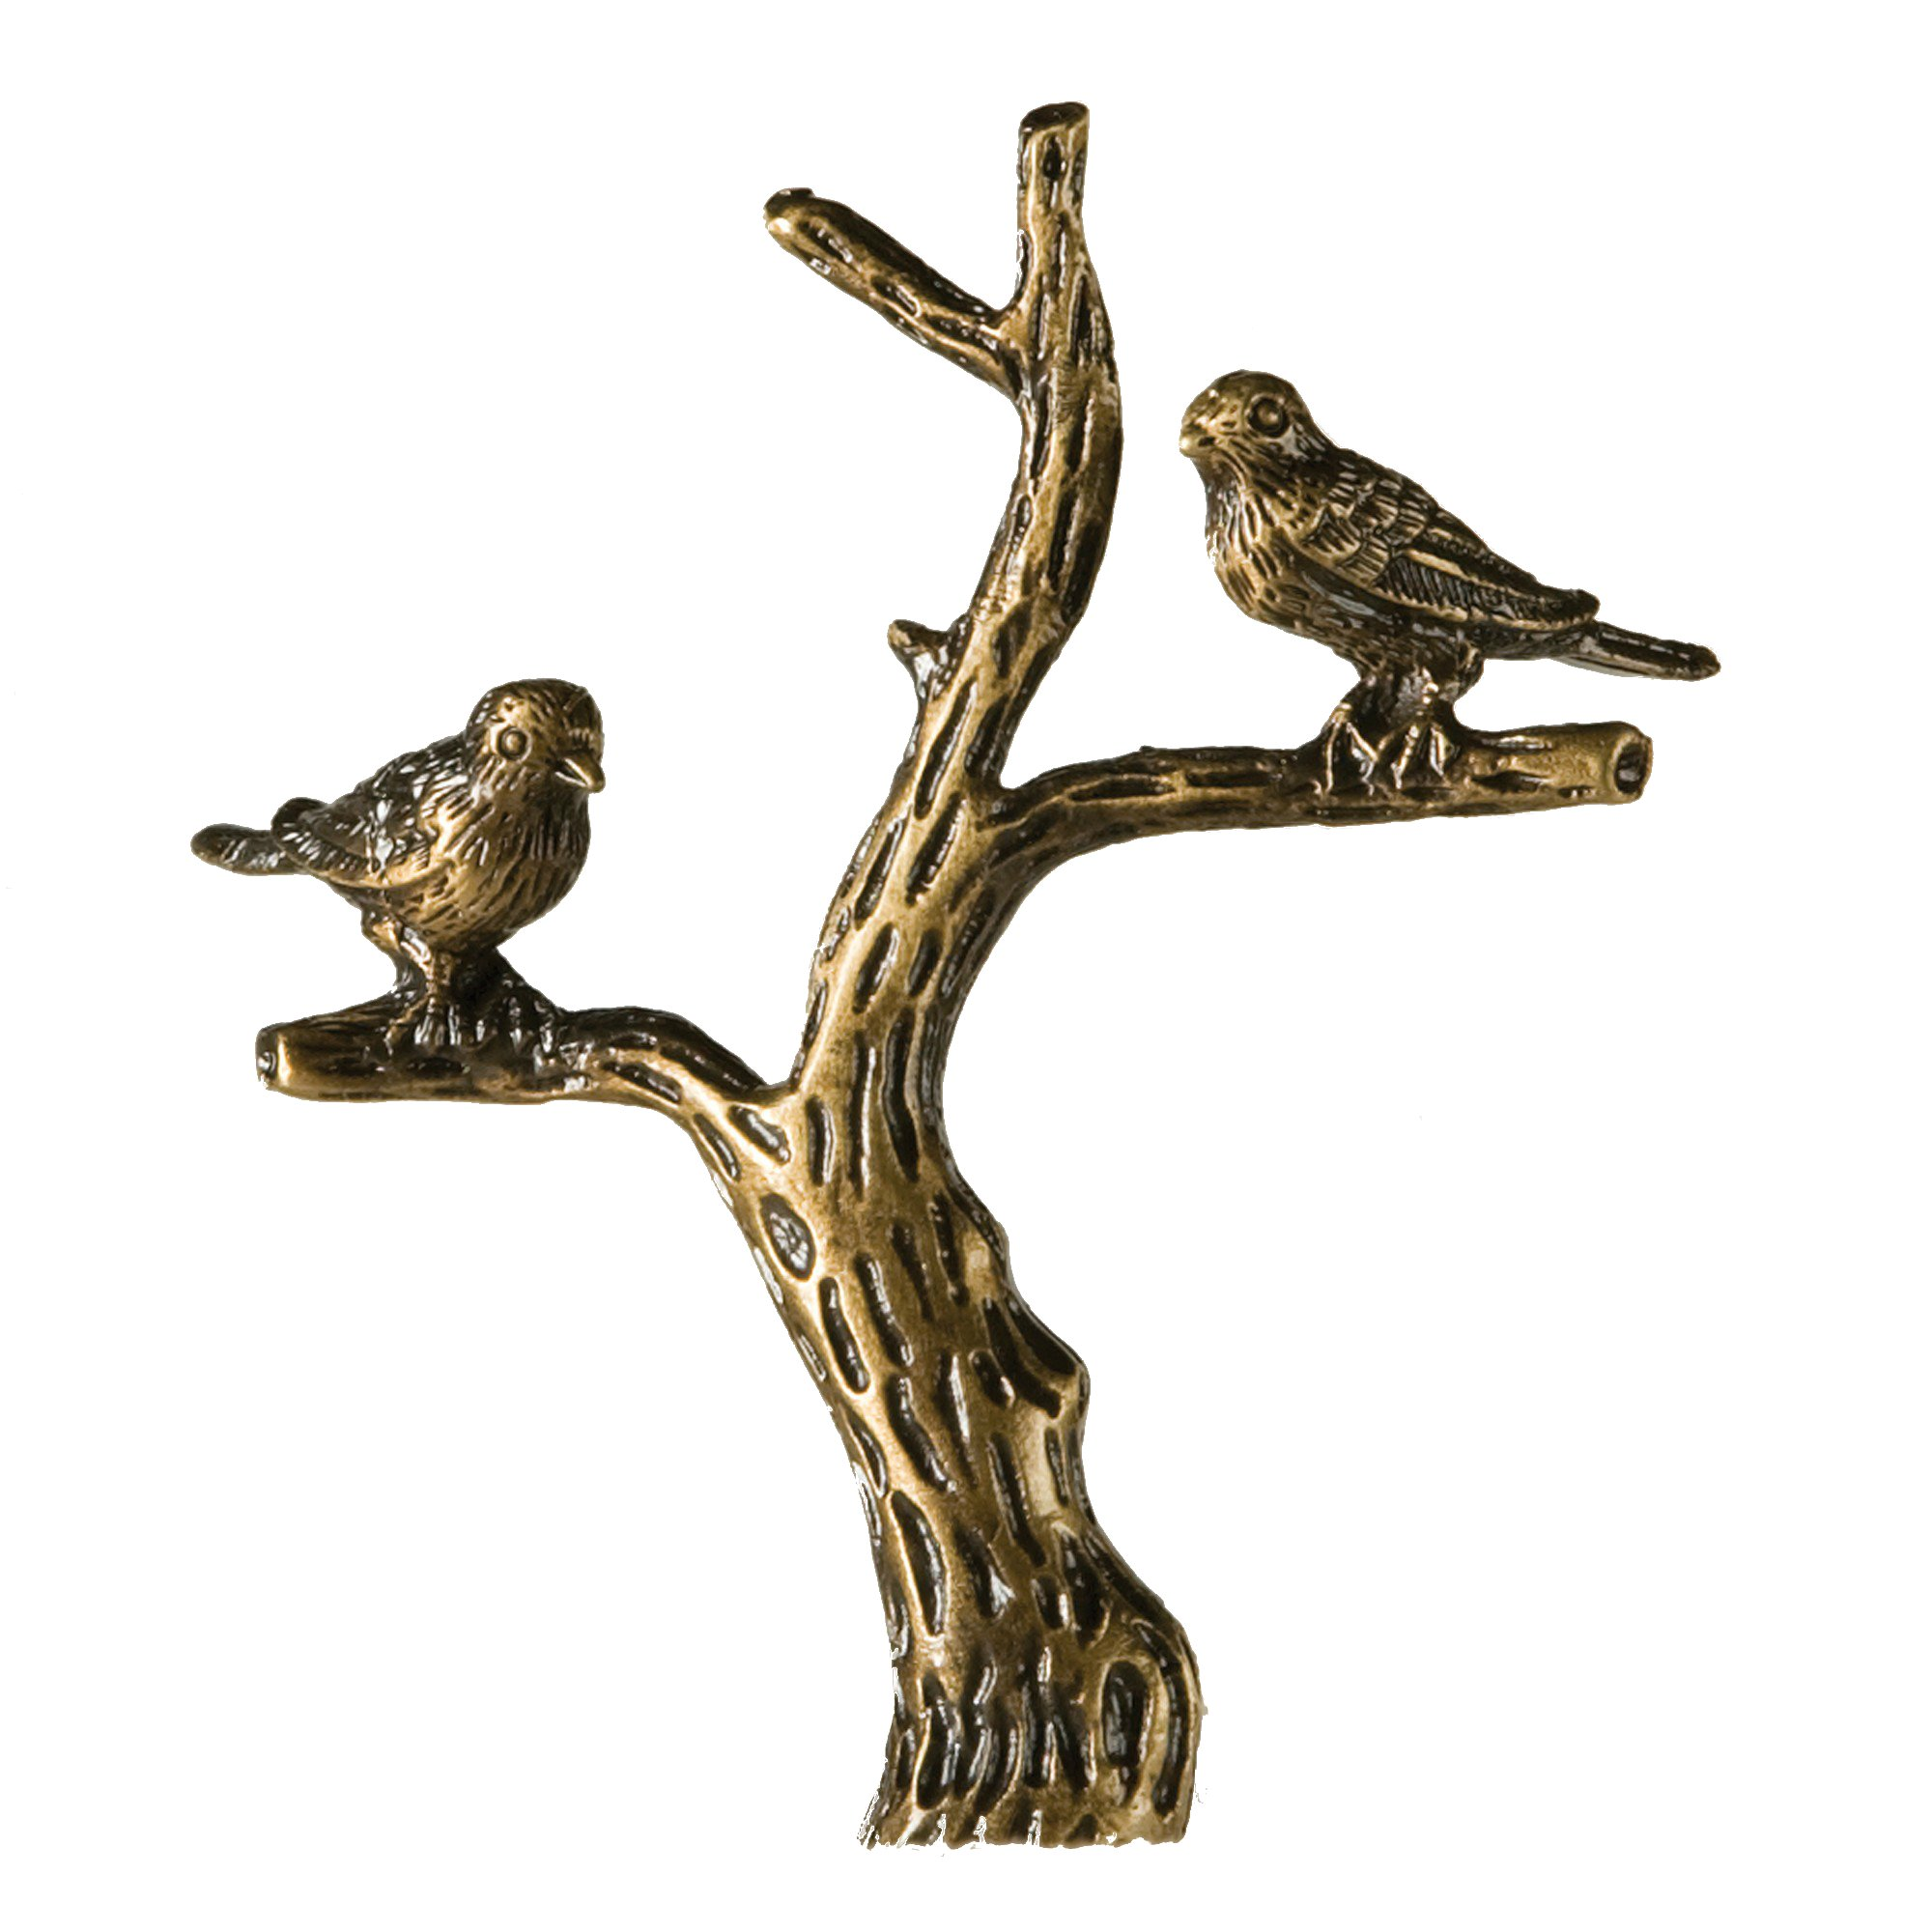 Antique Brass Bird in Tree Finial Bronze 3'' Tall Vintage Gold Look Lamp Shade Topper Finch Birds in Tree